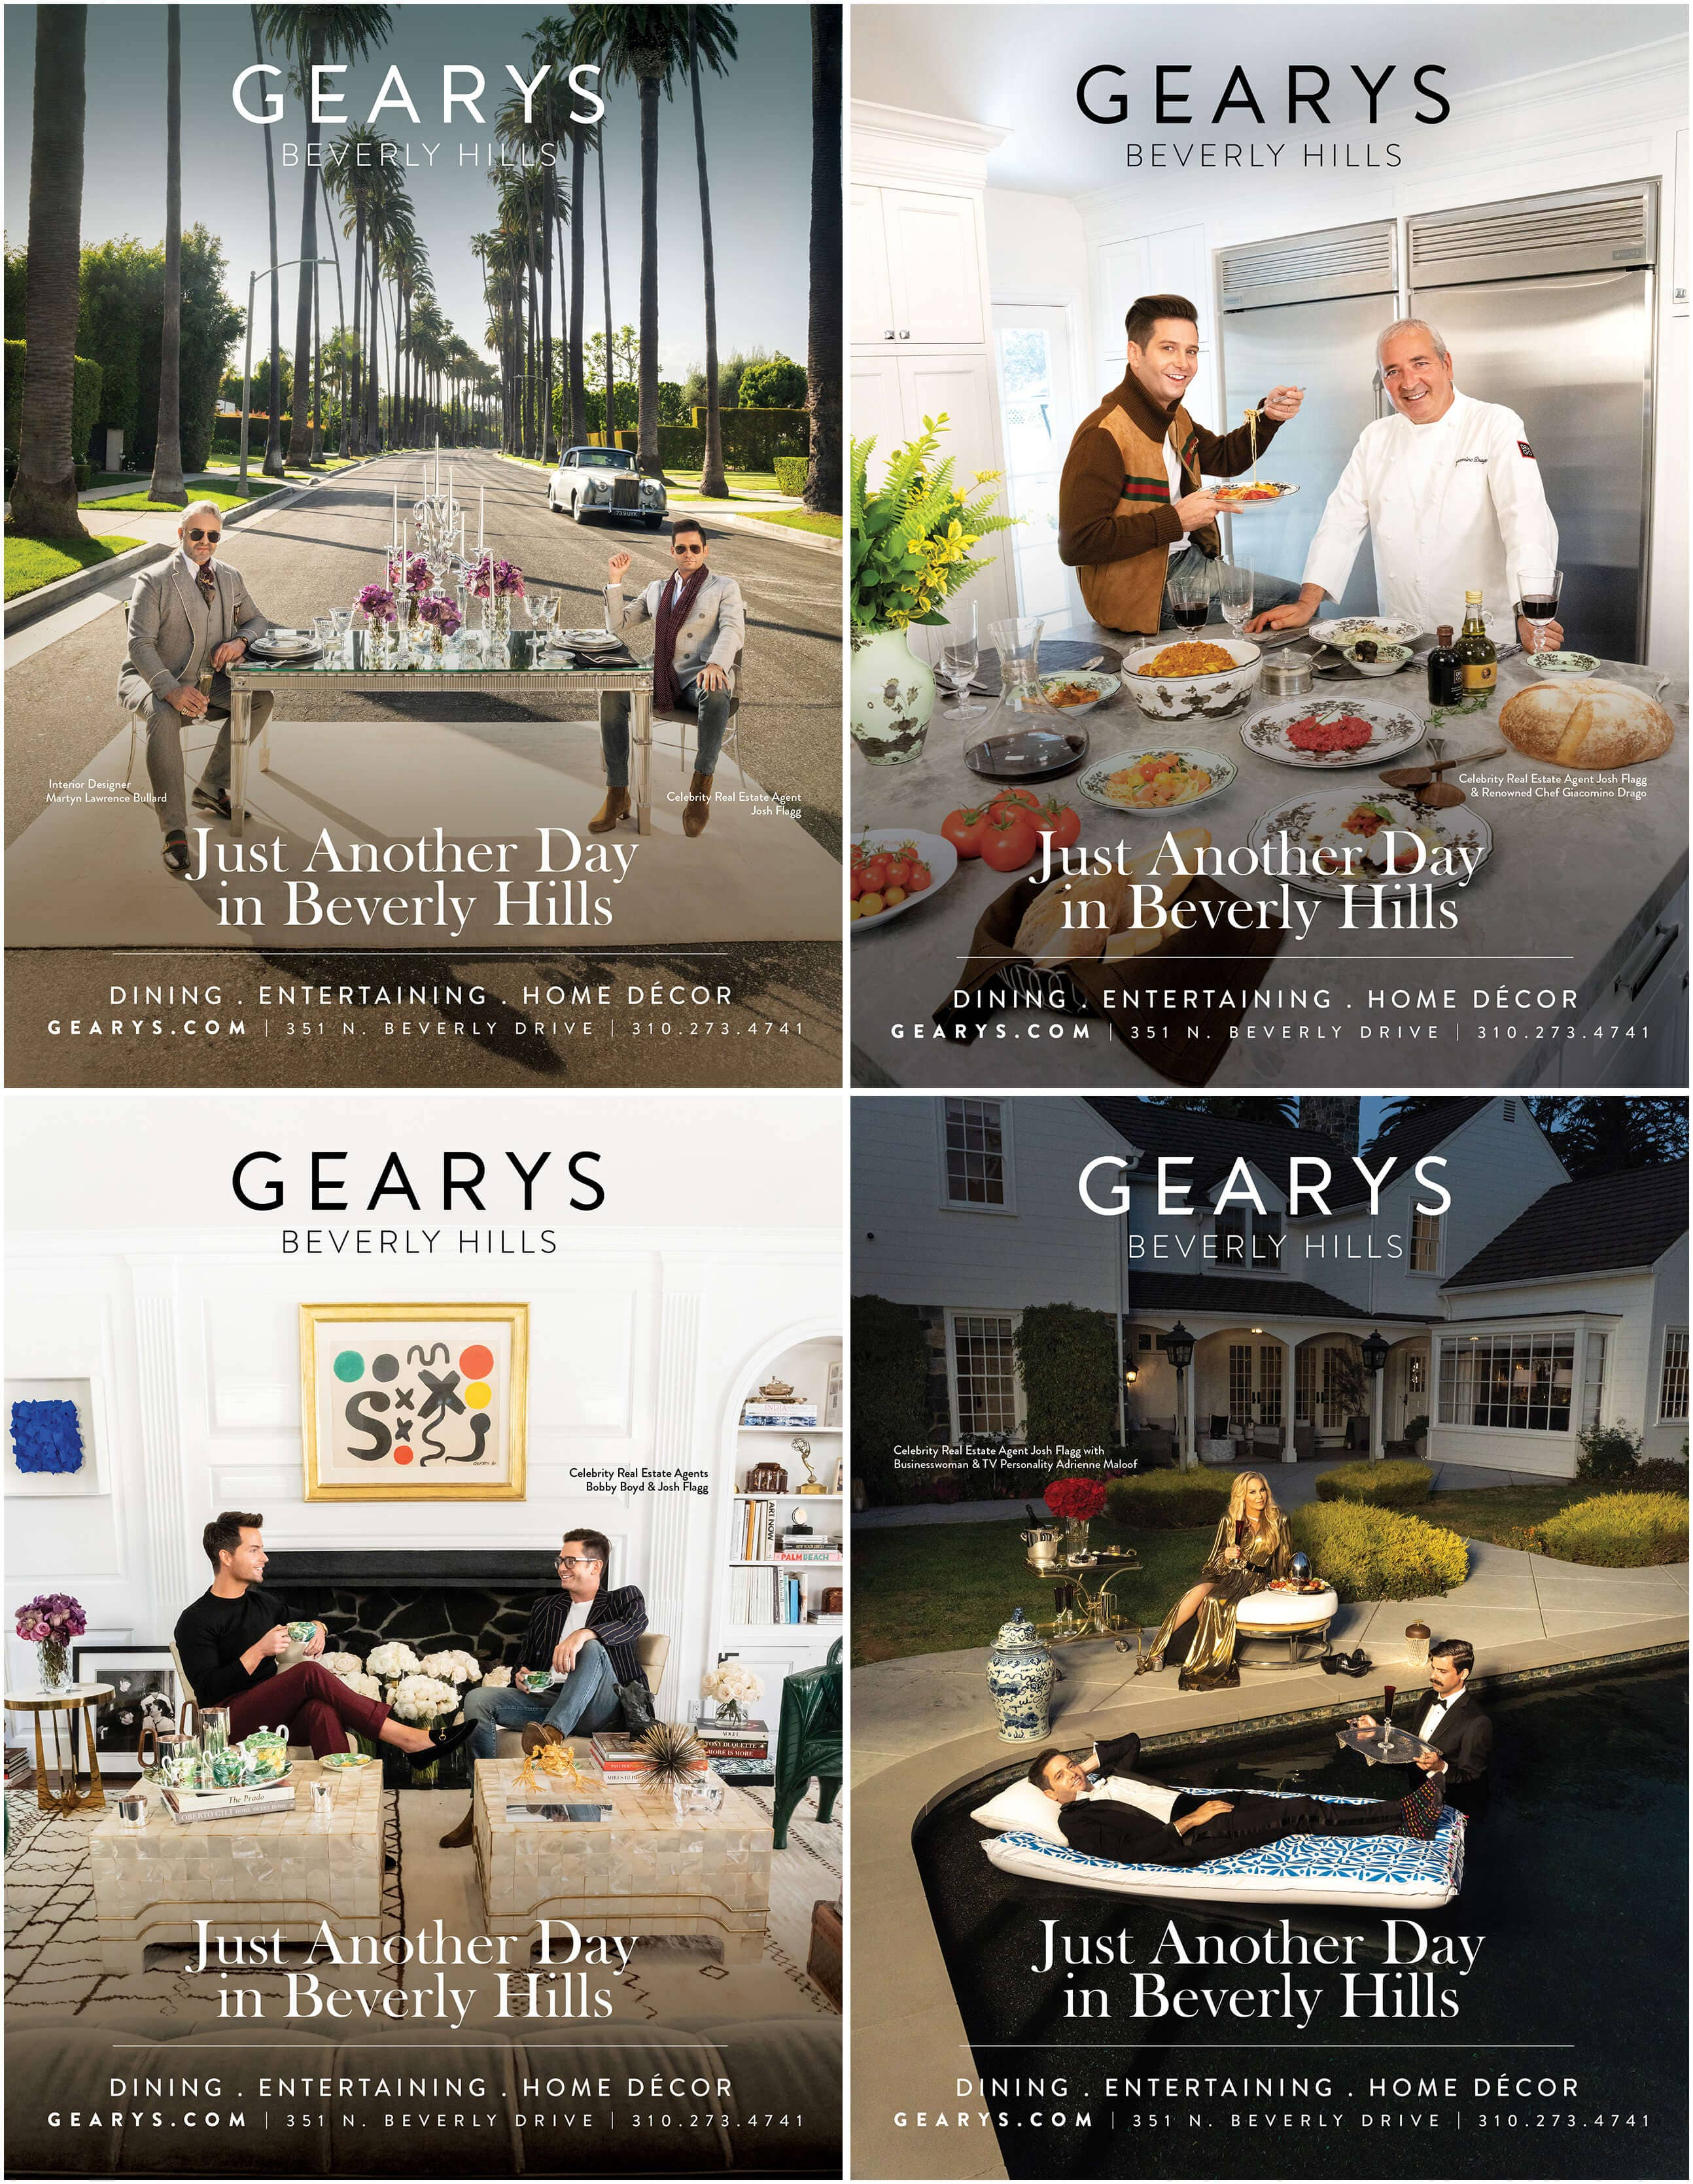 Architectural Digest Ads for GEARYS Just Another Day in Beverly Hills campaign